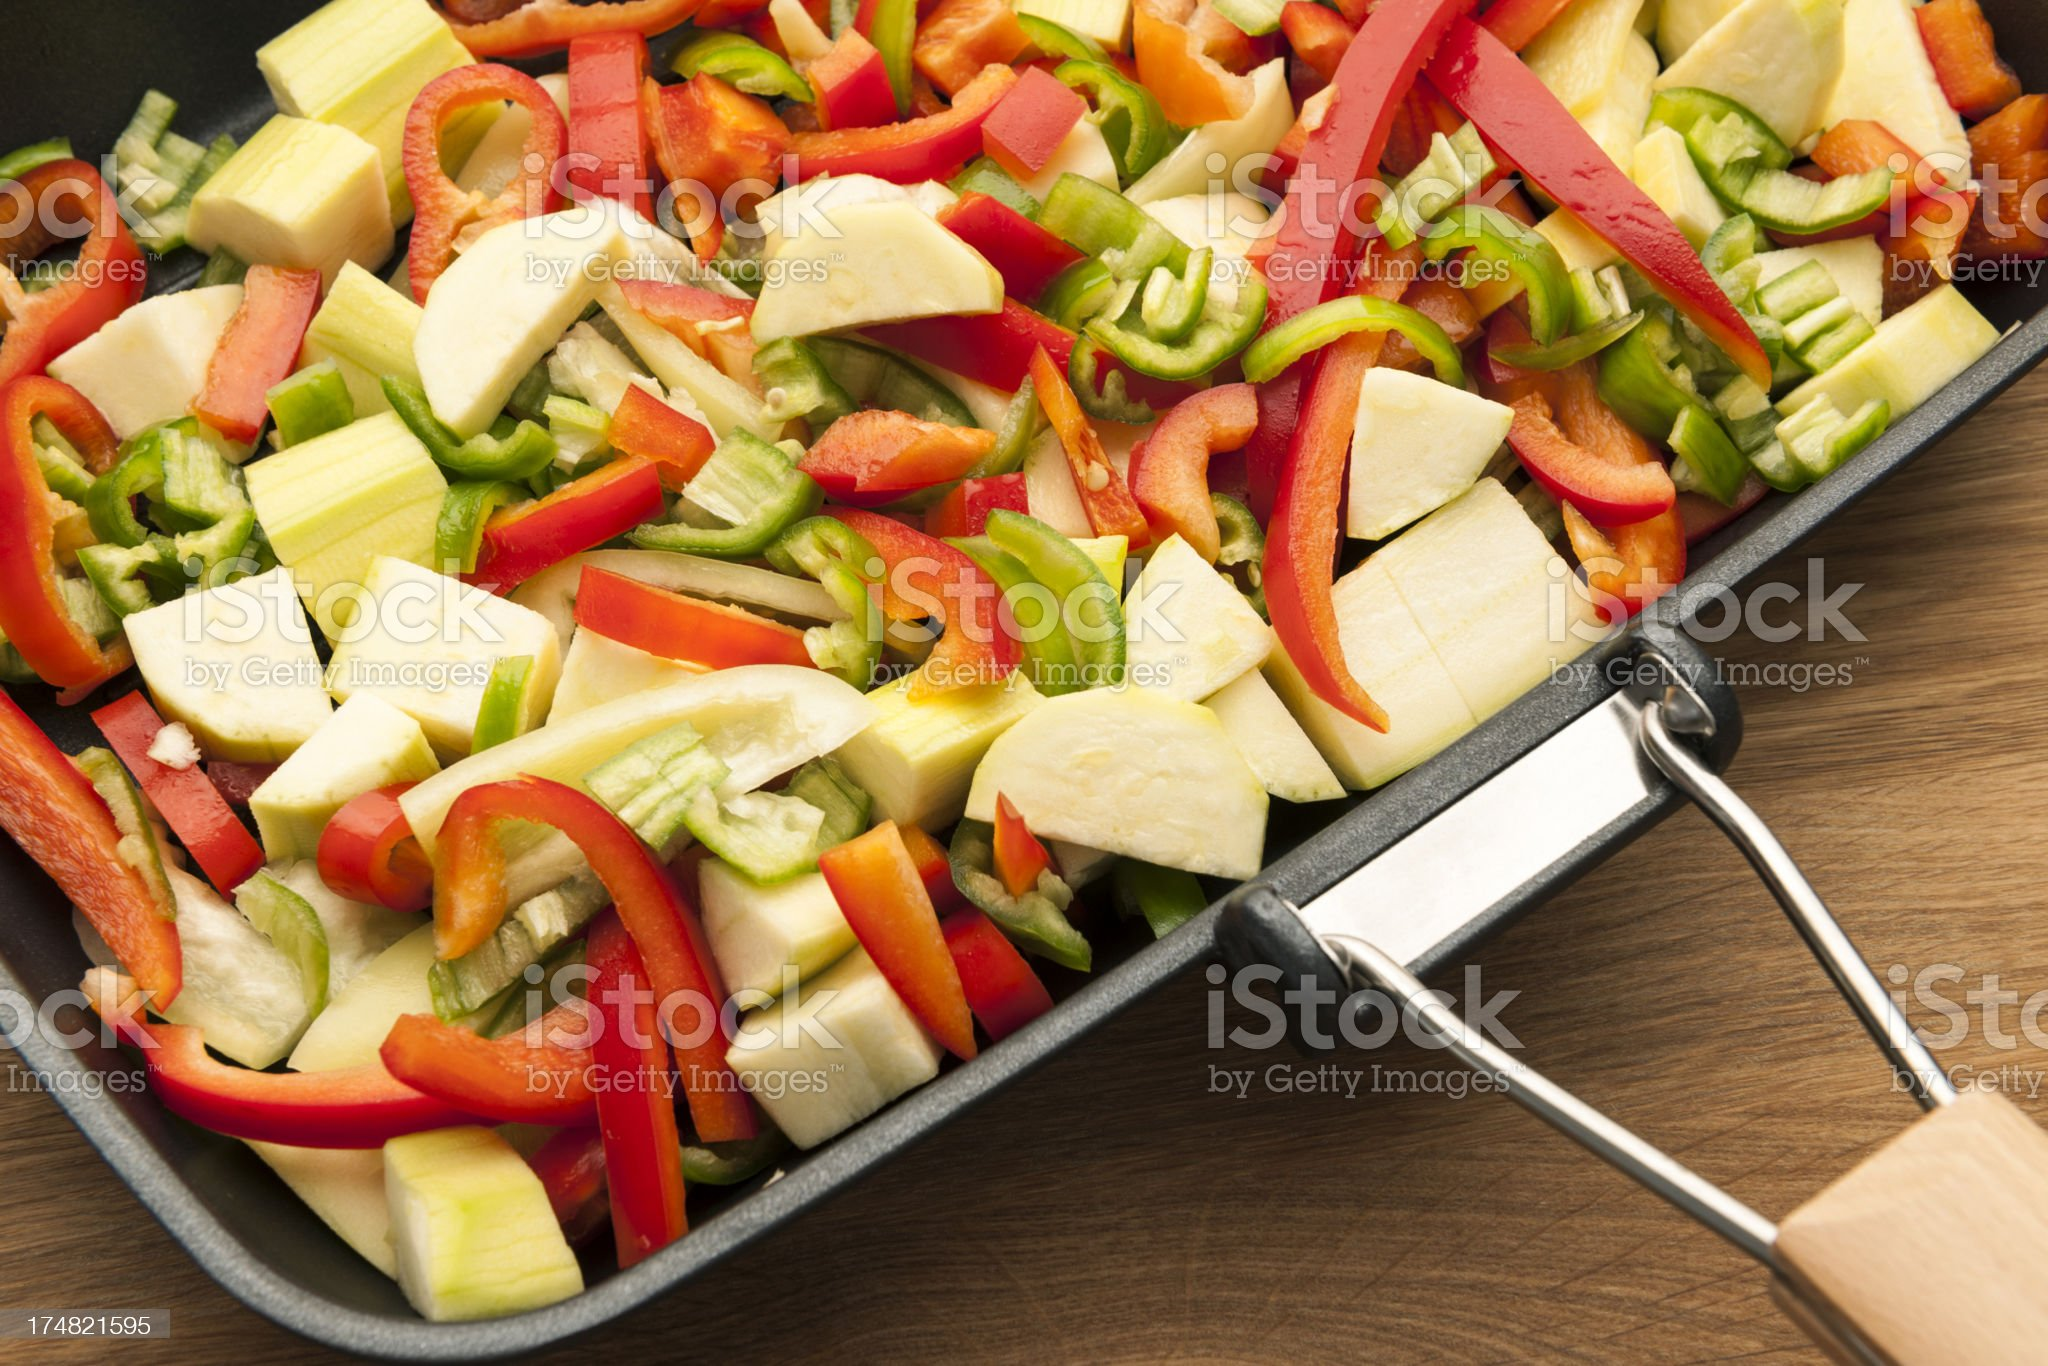 Vegetable Stir Fry royalty-free stock photo